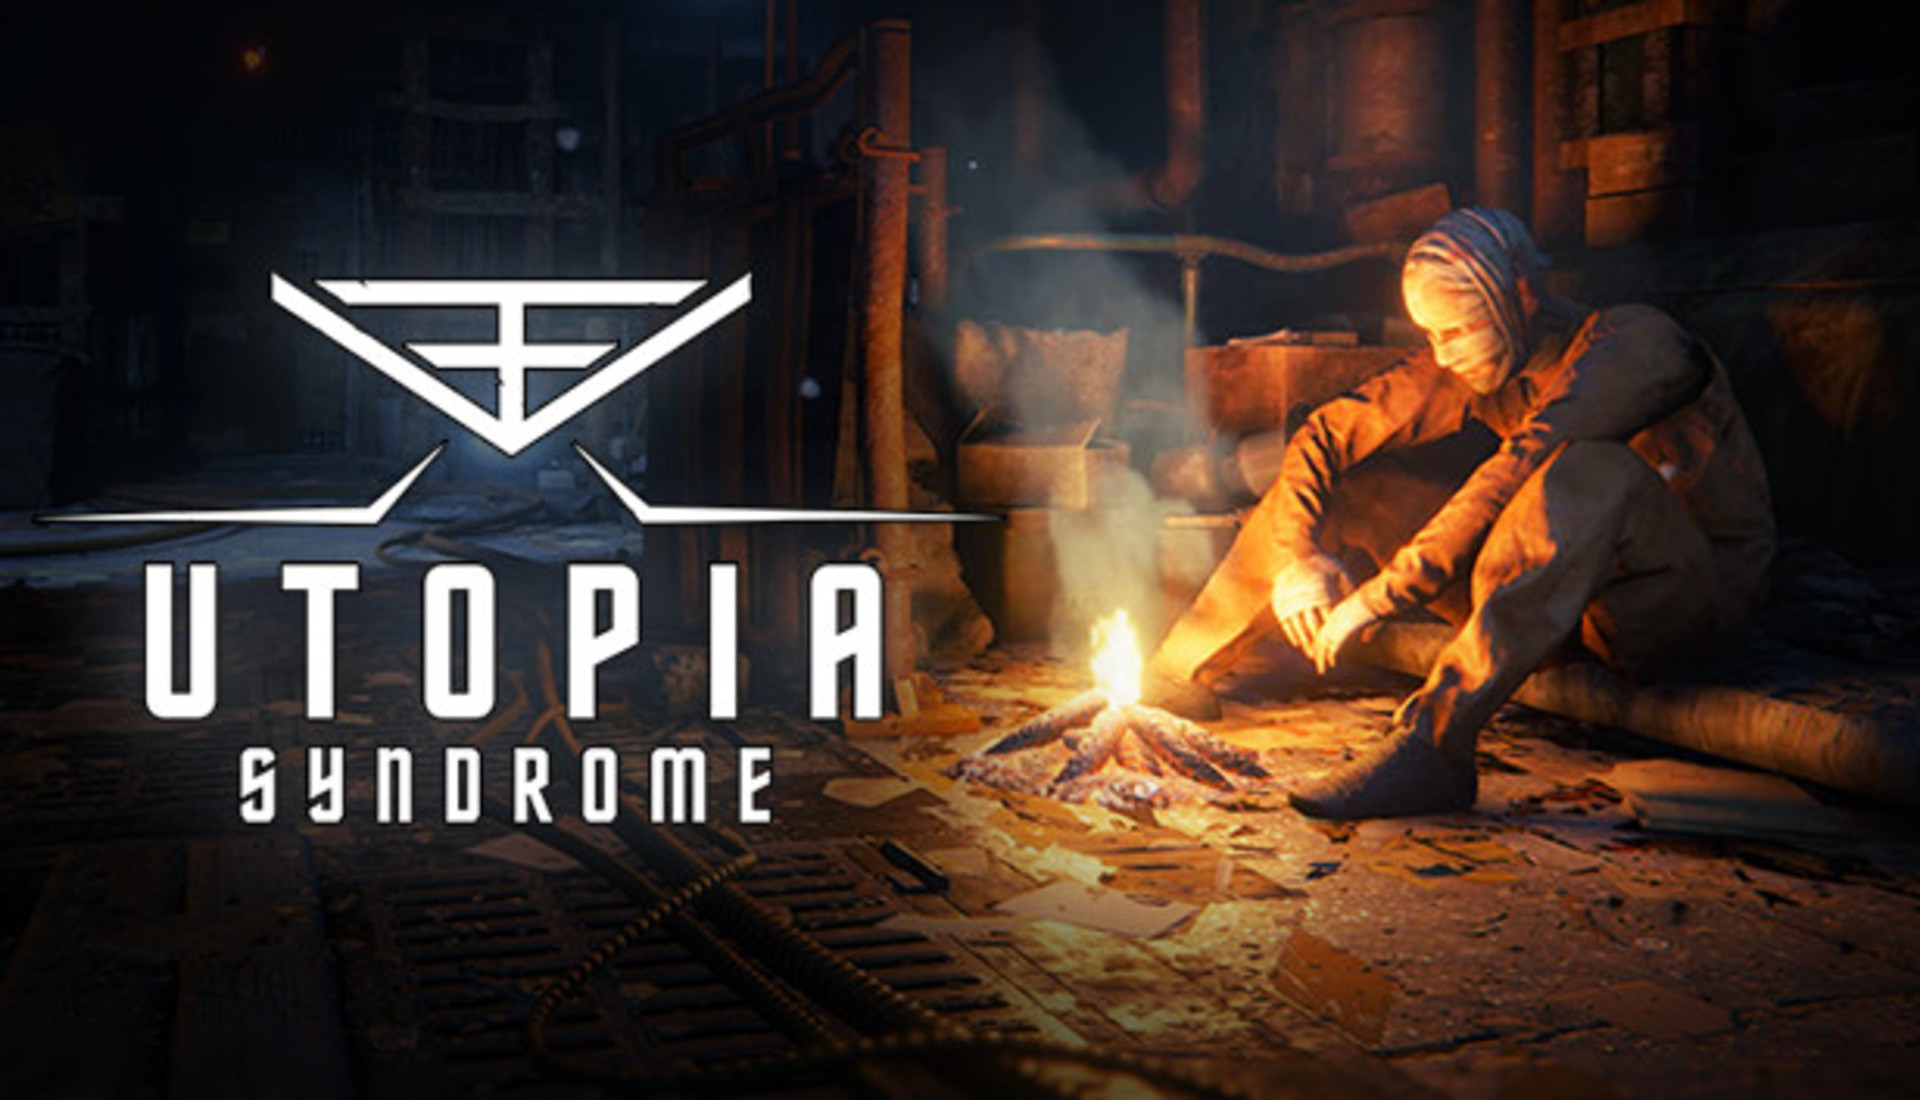 Utopia Syndrome game